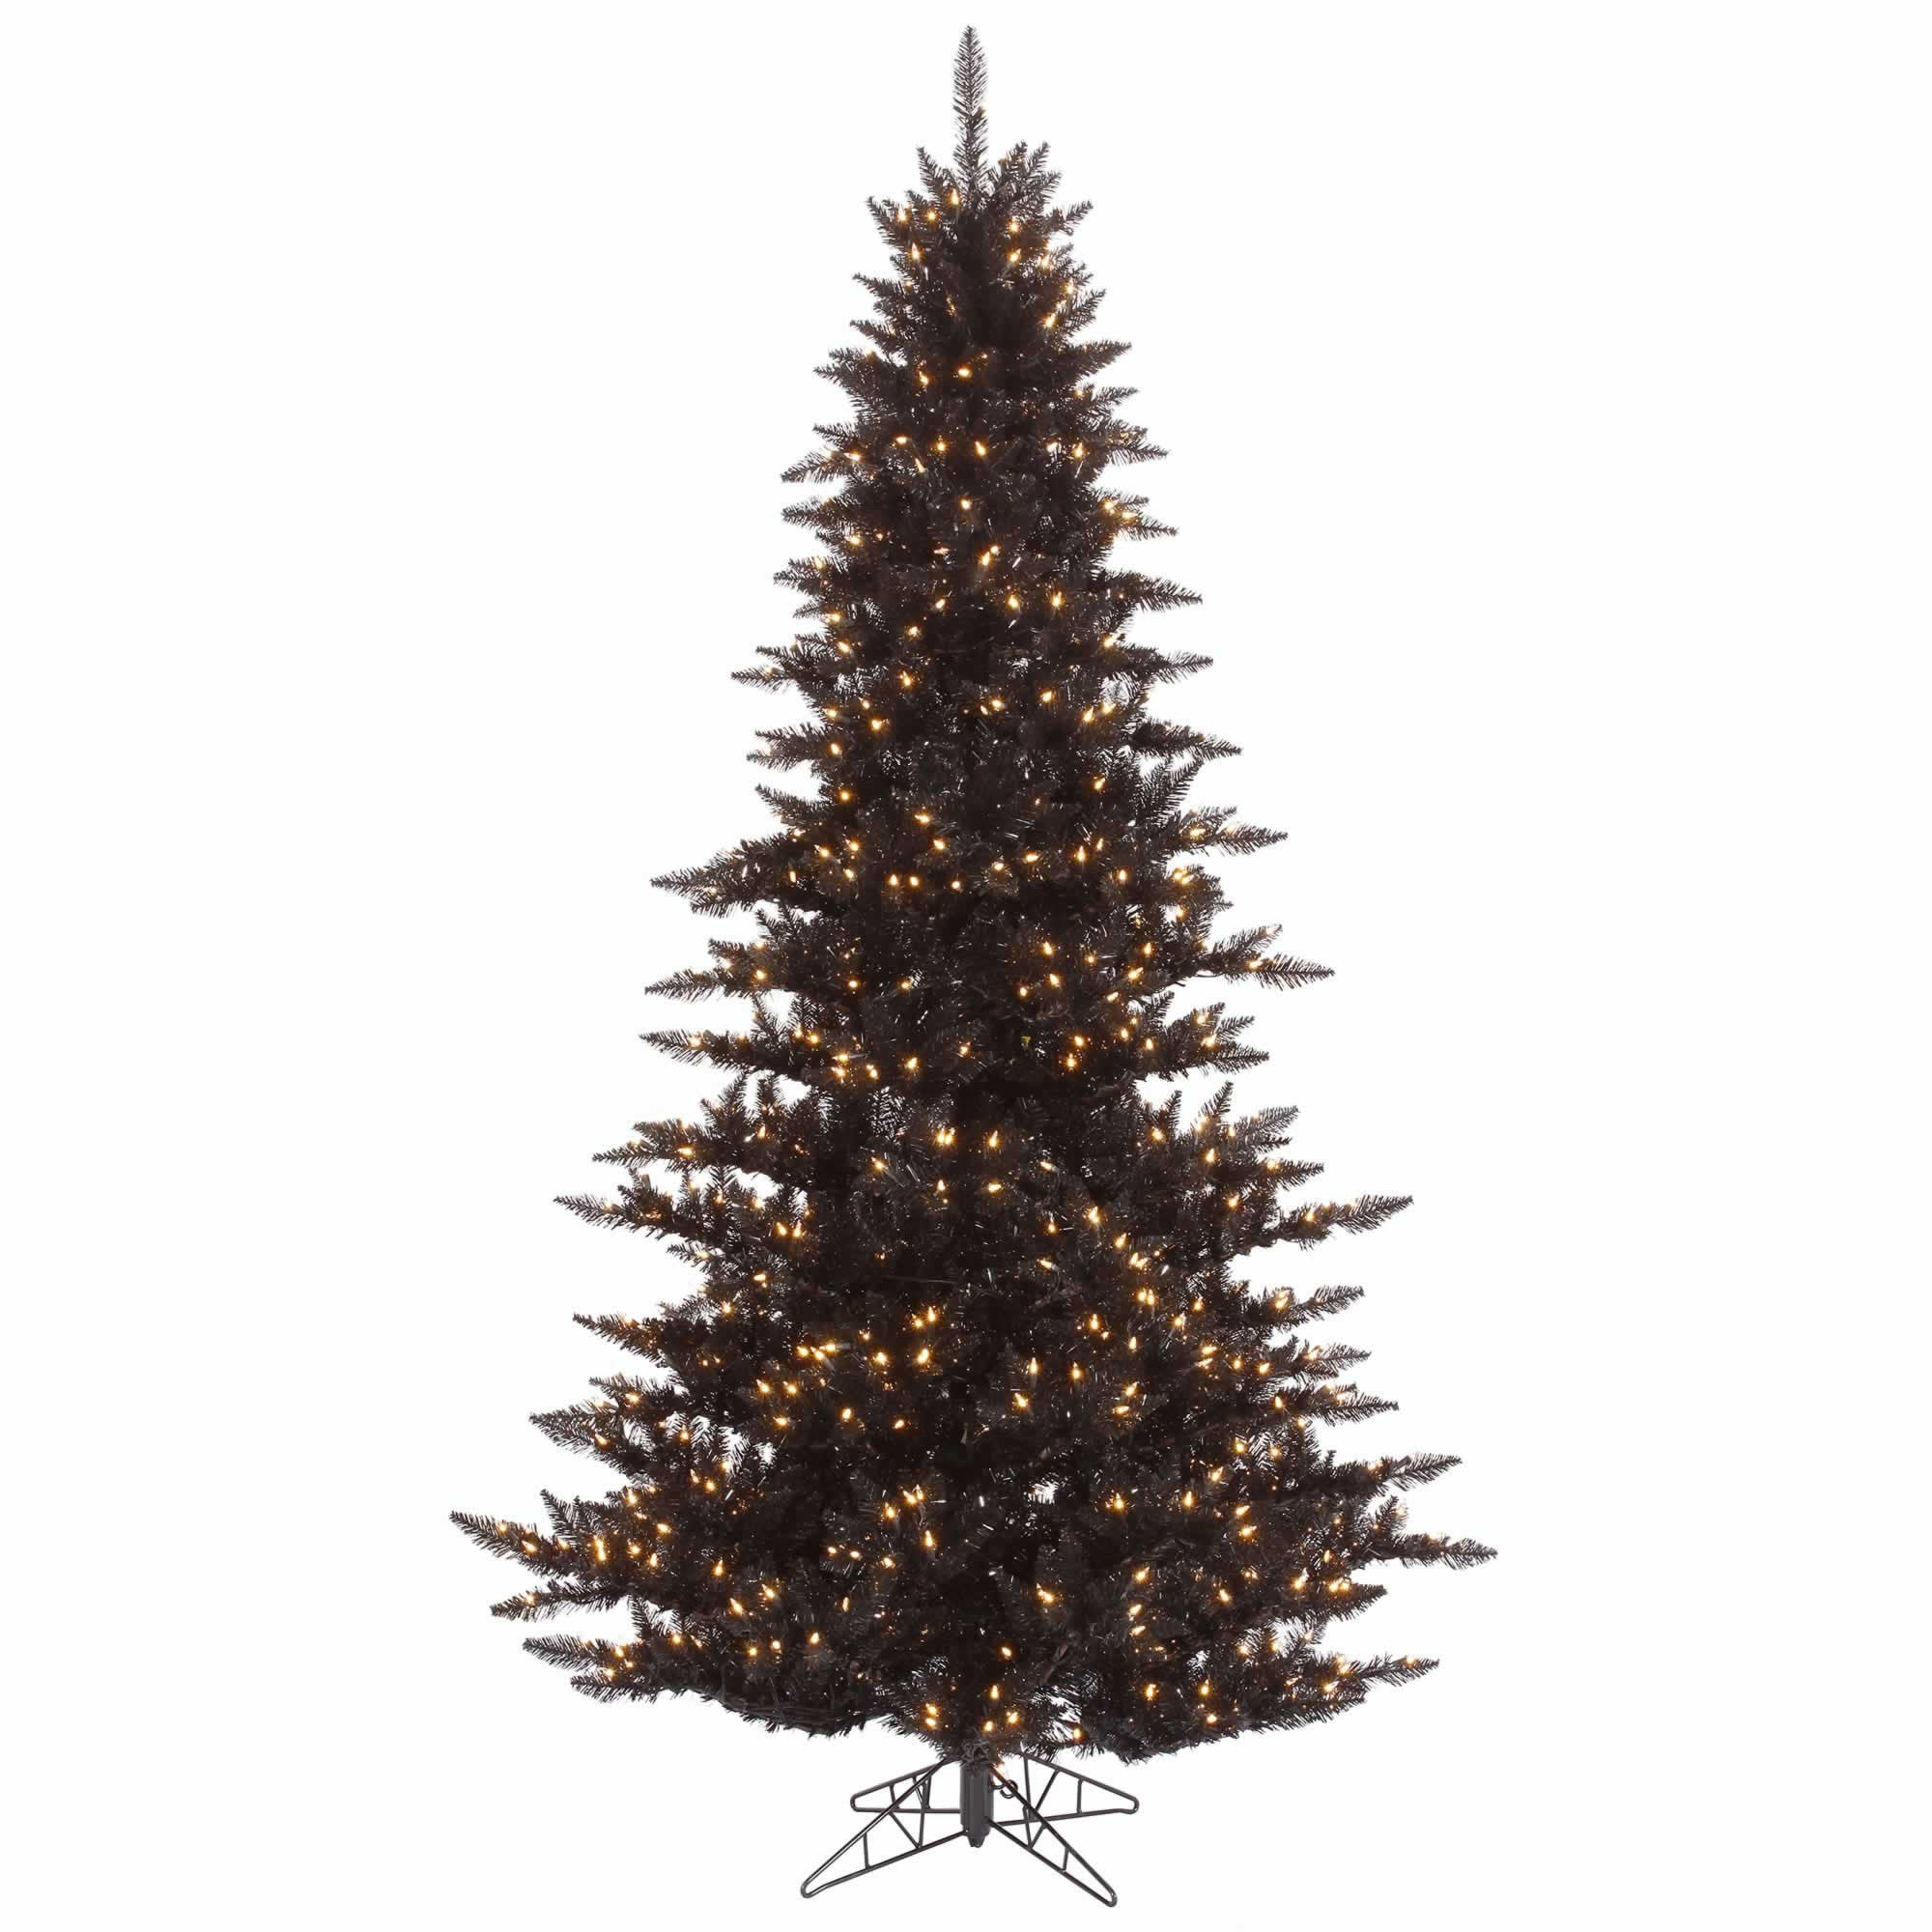 Black Christmas Trees Where To Buy Online Santa 39 S Site